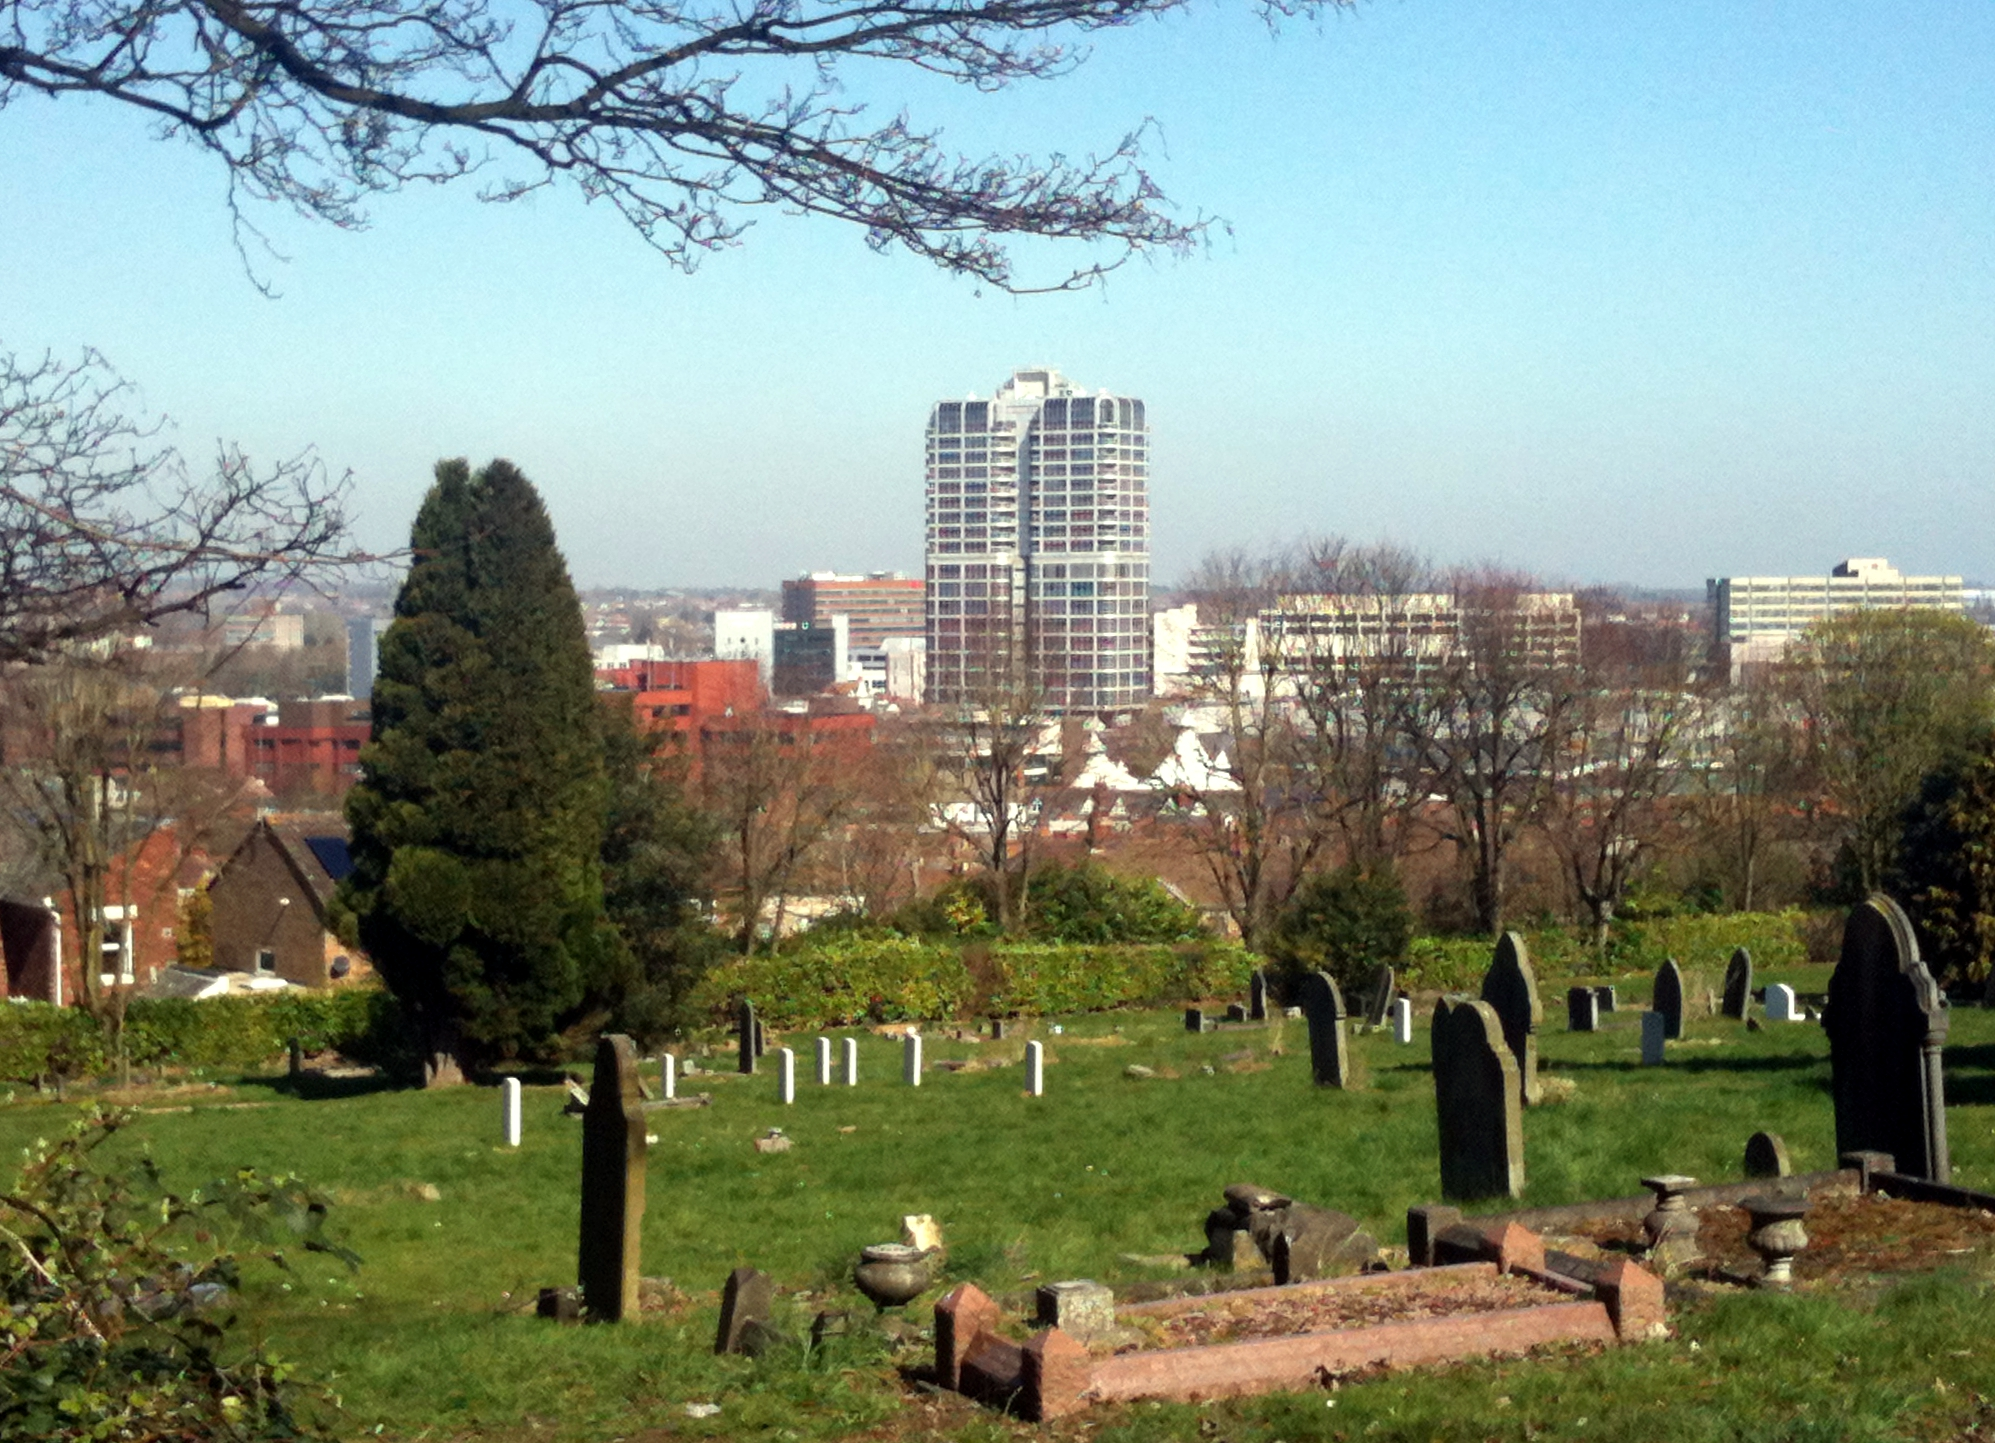 Swindon United Kingdom  City new picture : Swindon town centre, taken from Radnor Street Cemetery, Spring ...